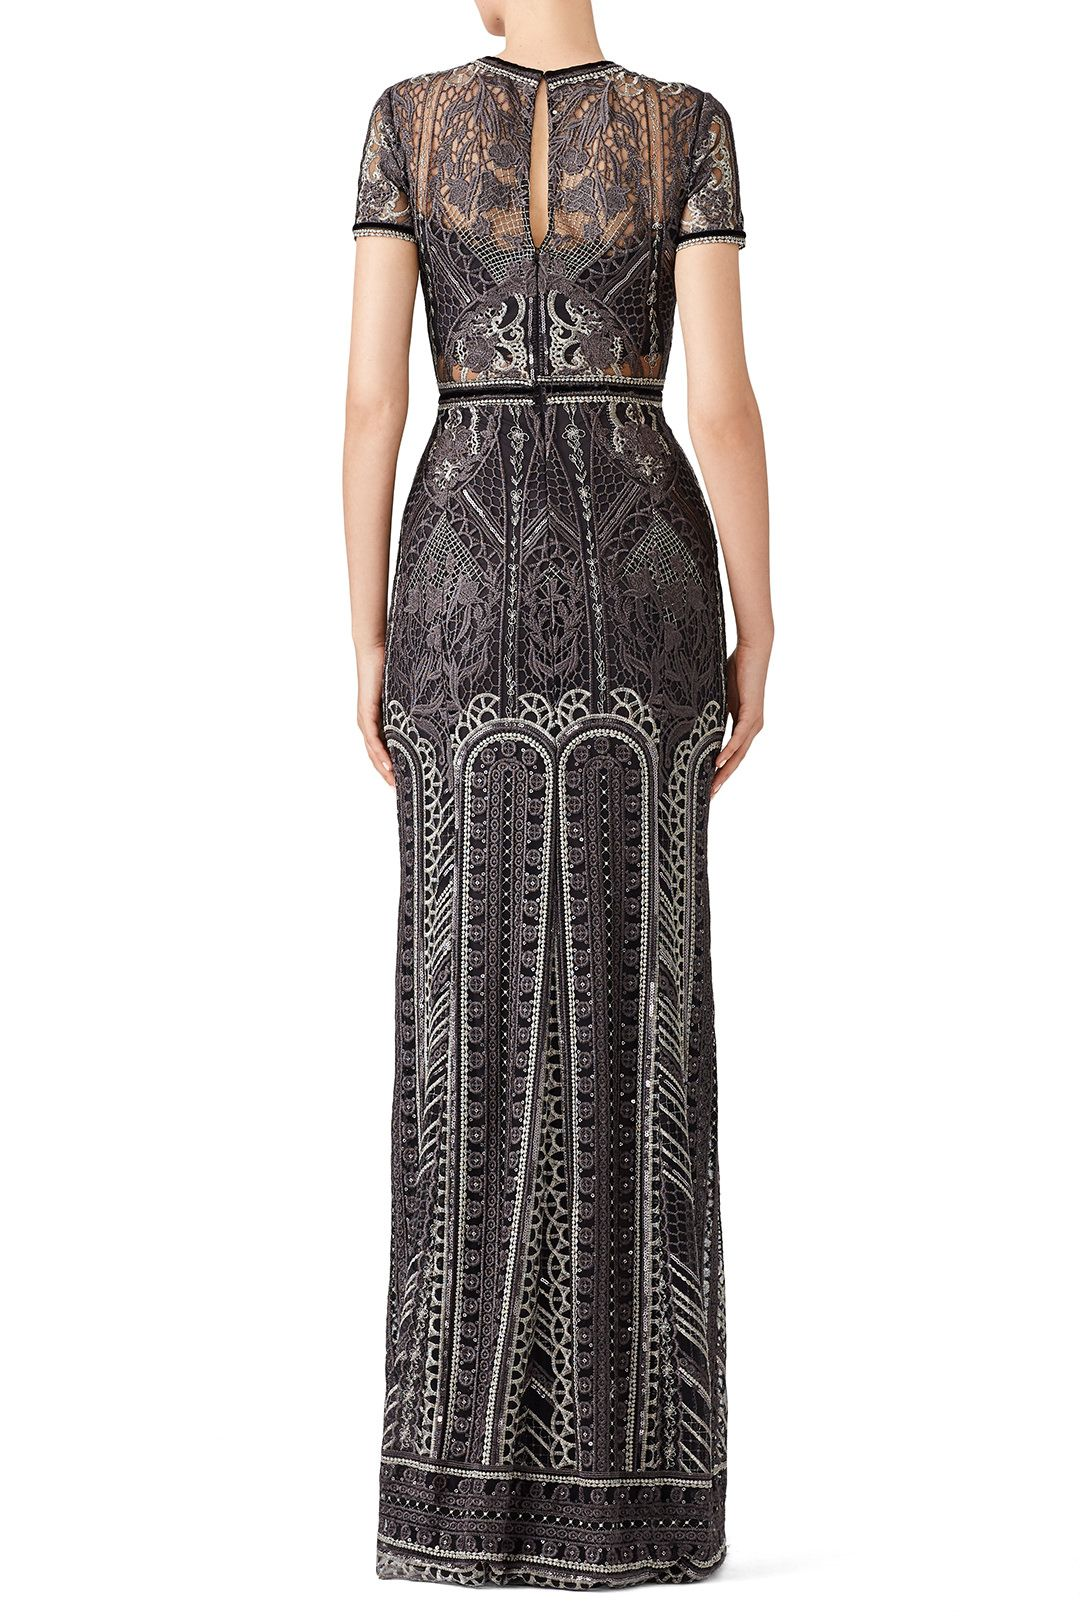 76289972 Silver Embroidered Gown by Marchesa Notte for $165   Rent the Runway ...